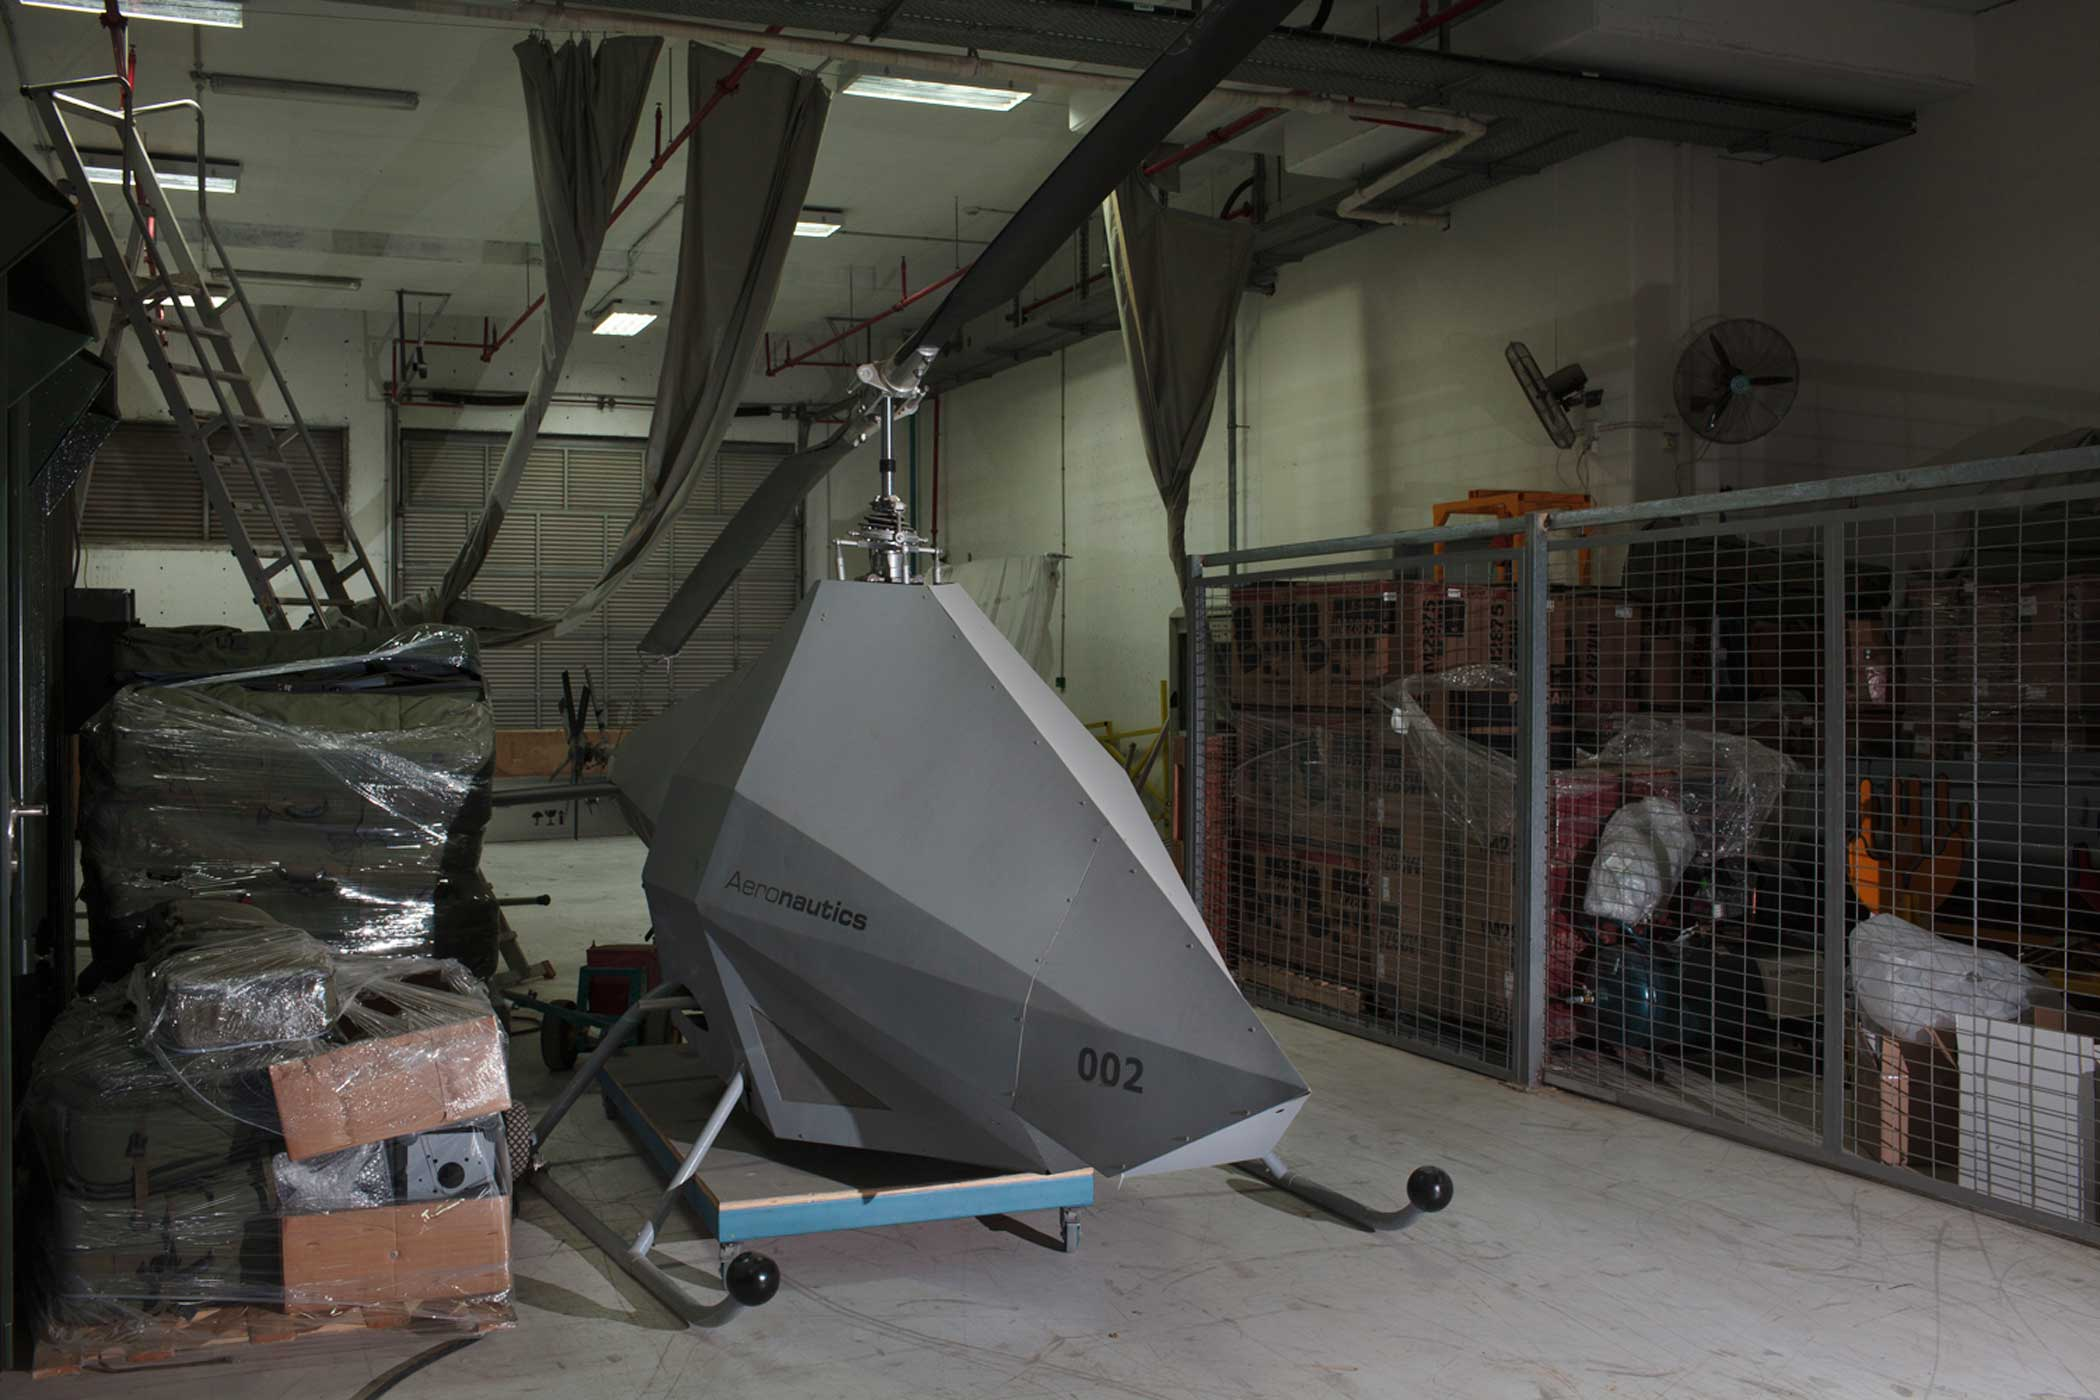 A prototype of the Picador, a VTOL (vertical take off and landing) UAV, sitting in a storage area inside the Aeronautics factory.in Yavne, Israel.